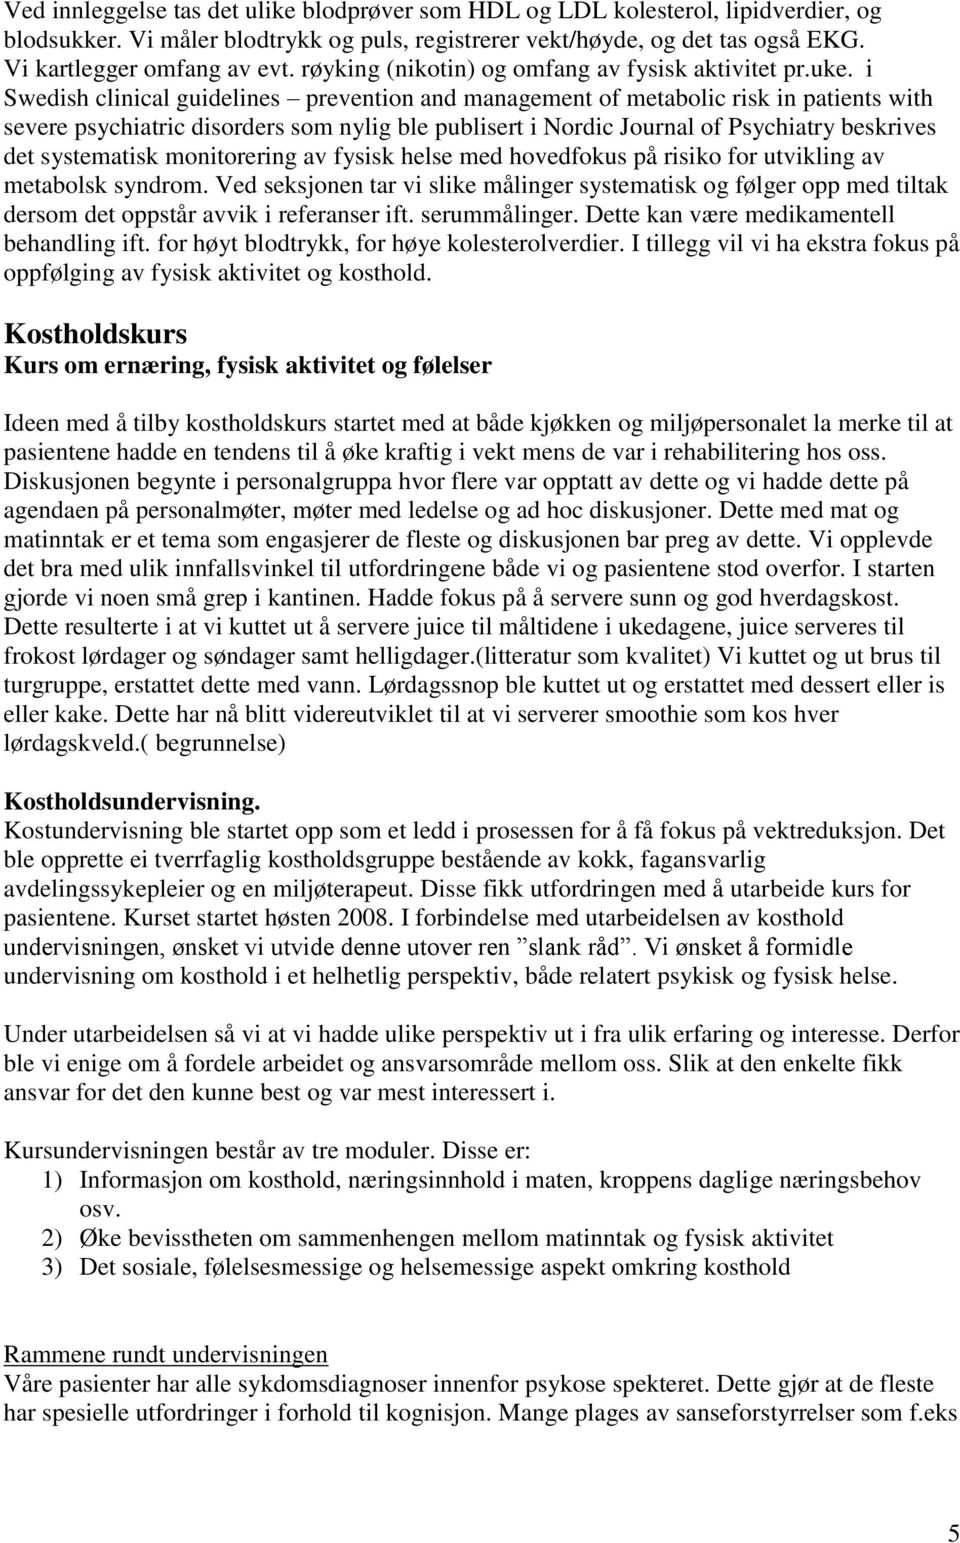 i Swedish clinical guidelines prevention and management of metabolic risk in patients with severe psychiatric disorders som nylig ble publisert i Nordic Journal of Psychiatry beskrives det